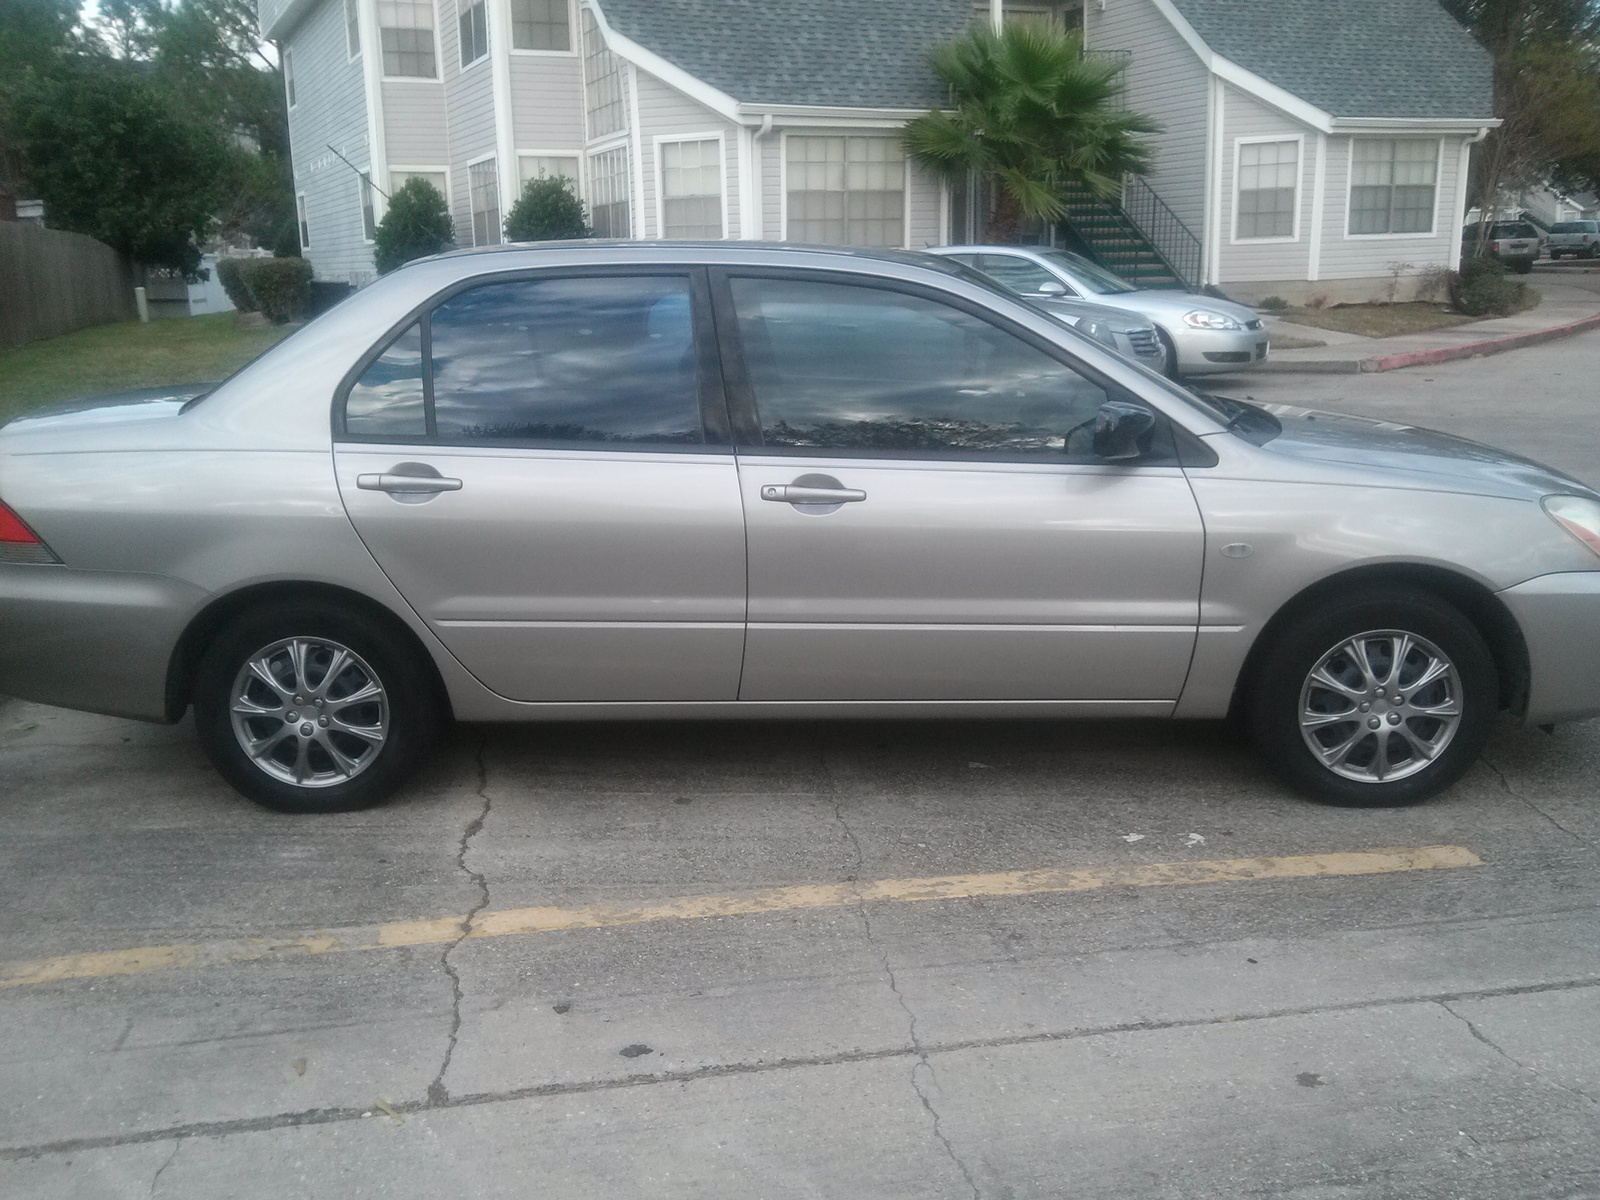 mitsubishi galant space with 2004 Mitsubishi Lancer Pictures C2860 Pi36511209 on Colt Iii C50 13 C51a 70 Hp as well 2004 Mitsubishi Lancer Evolution Pictures C2861 as well 2018 Mitsubishi Asx Release Date Specs Price besides Cute 20quotes together with 2009 Mitsubishi Eclipse Pictures C21038 pi36128373.